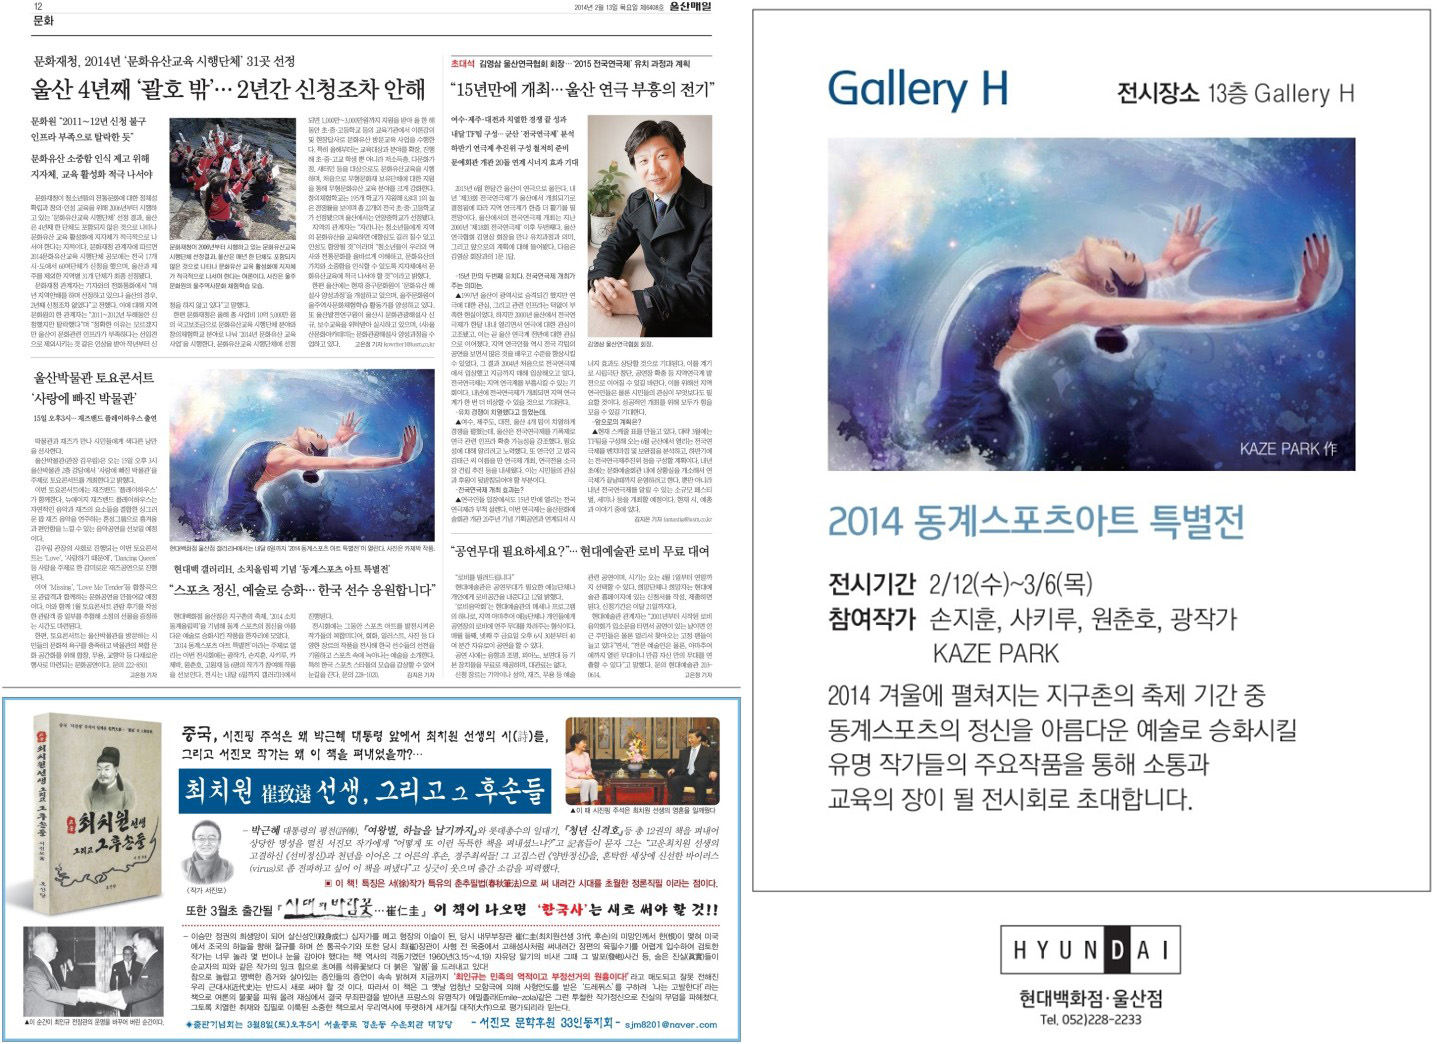 Hyundai Department Store Gallaly H